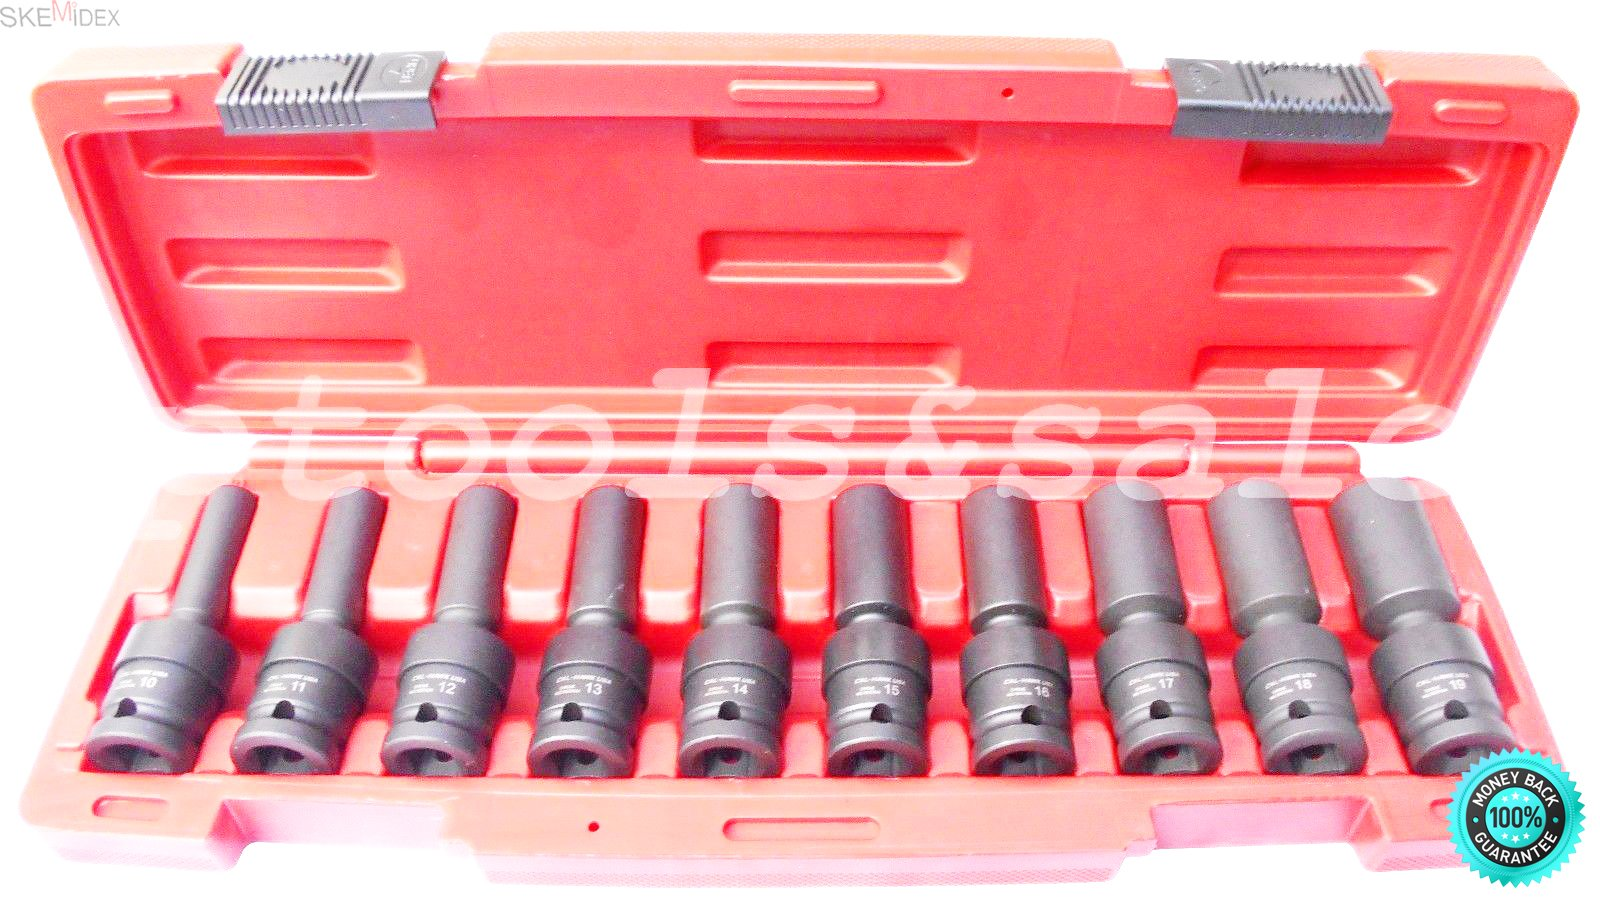 SKEMiDEX---20Pcs 1/2'' Drive Universal Swivel Deep Impact Socket Sets METRIC/SAE PRO Radius. Chrome Molybdenum Alloy Steel (CR-MO) For Exceptional Strength and Durability